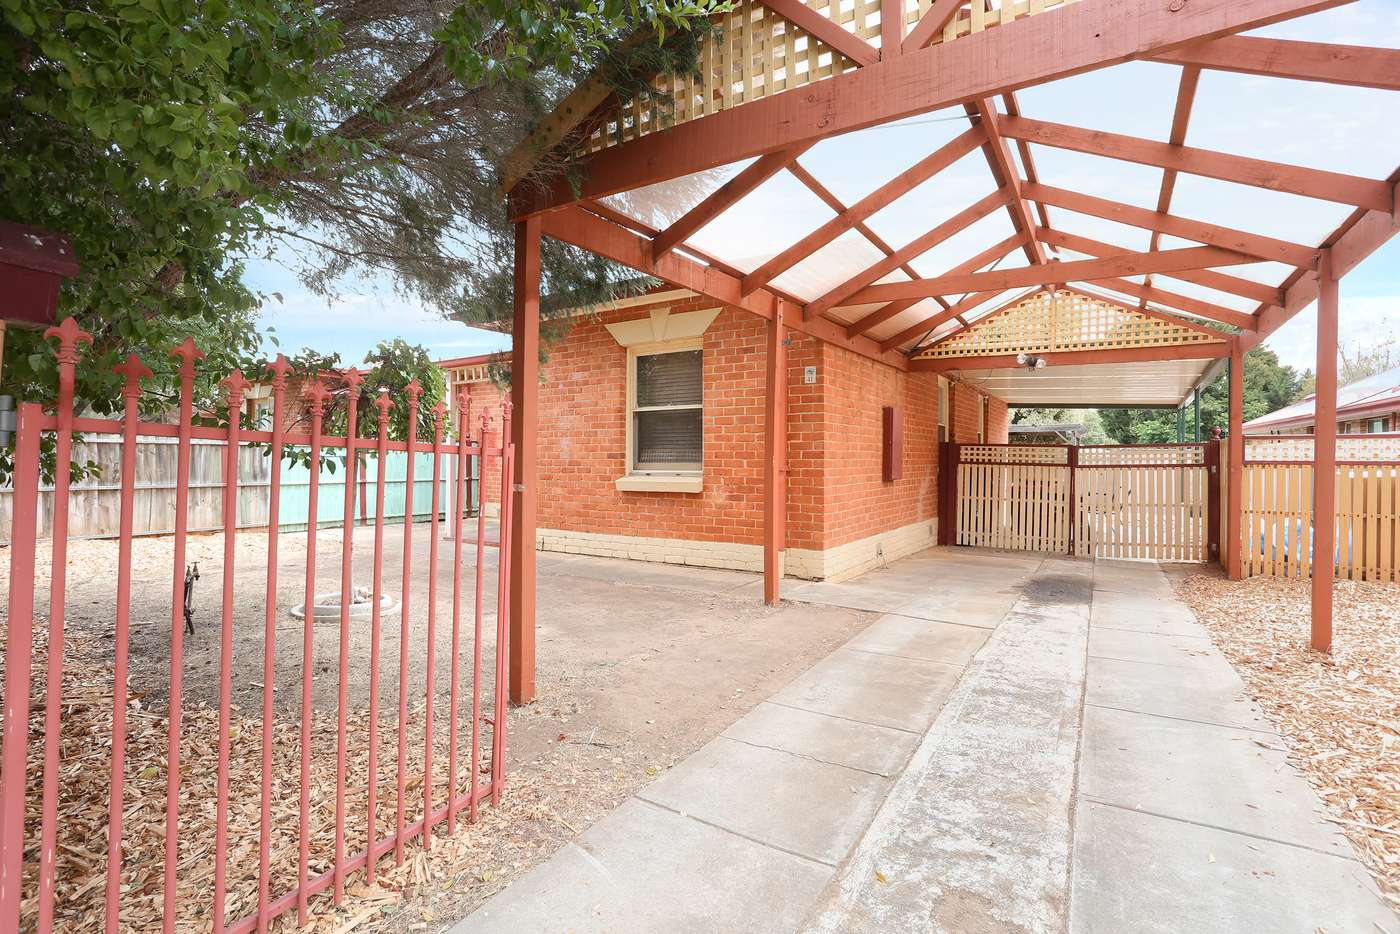 Main view of Homely house listing, 41 Tilshead Road, Elizabeth North, SA 5113